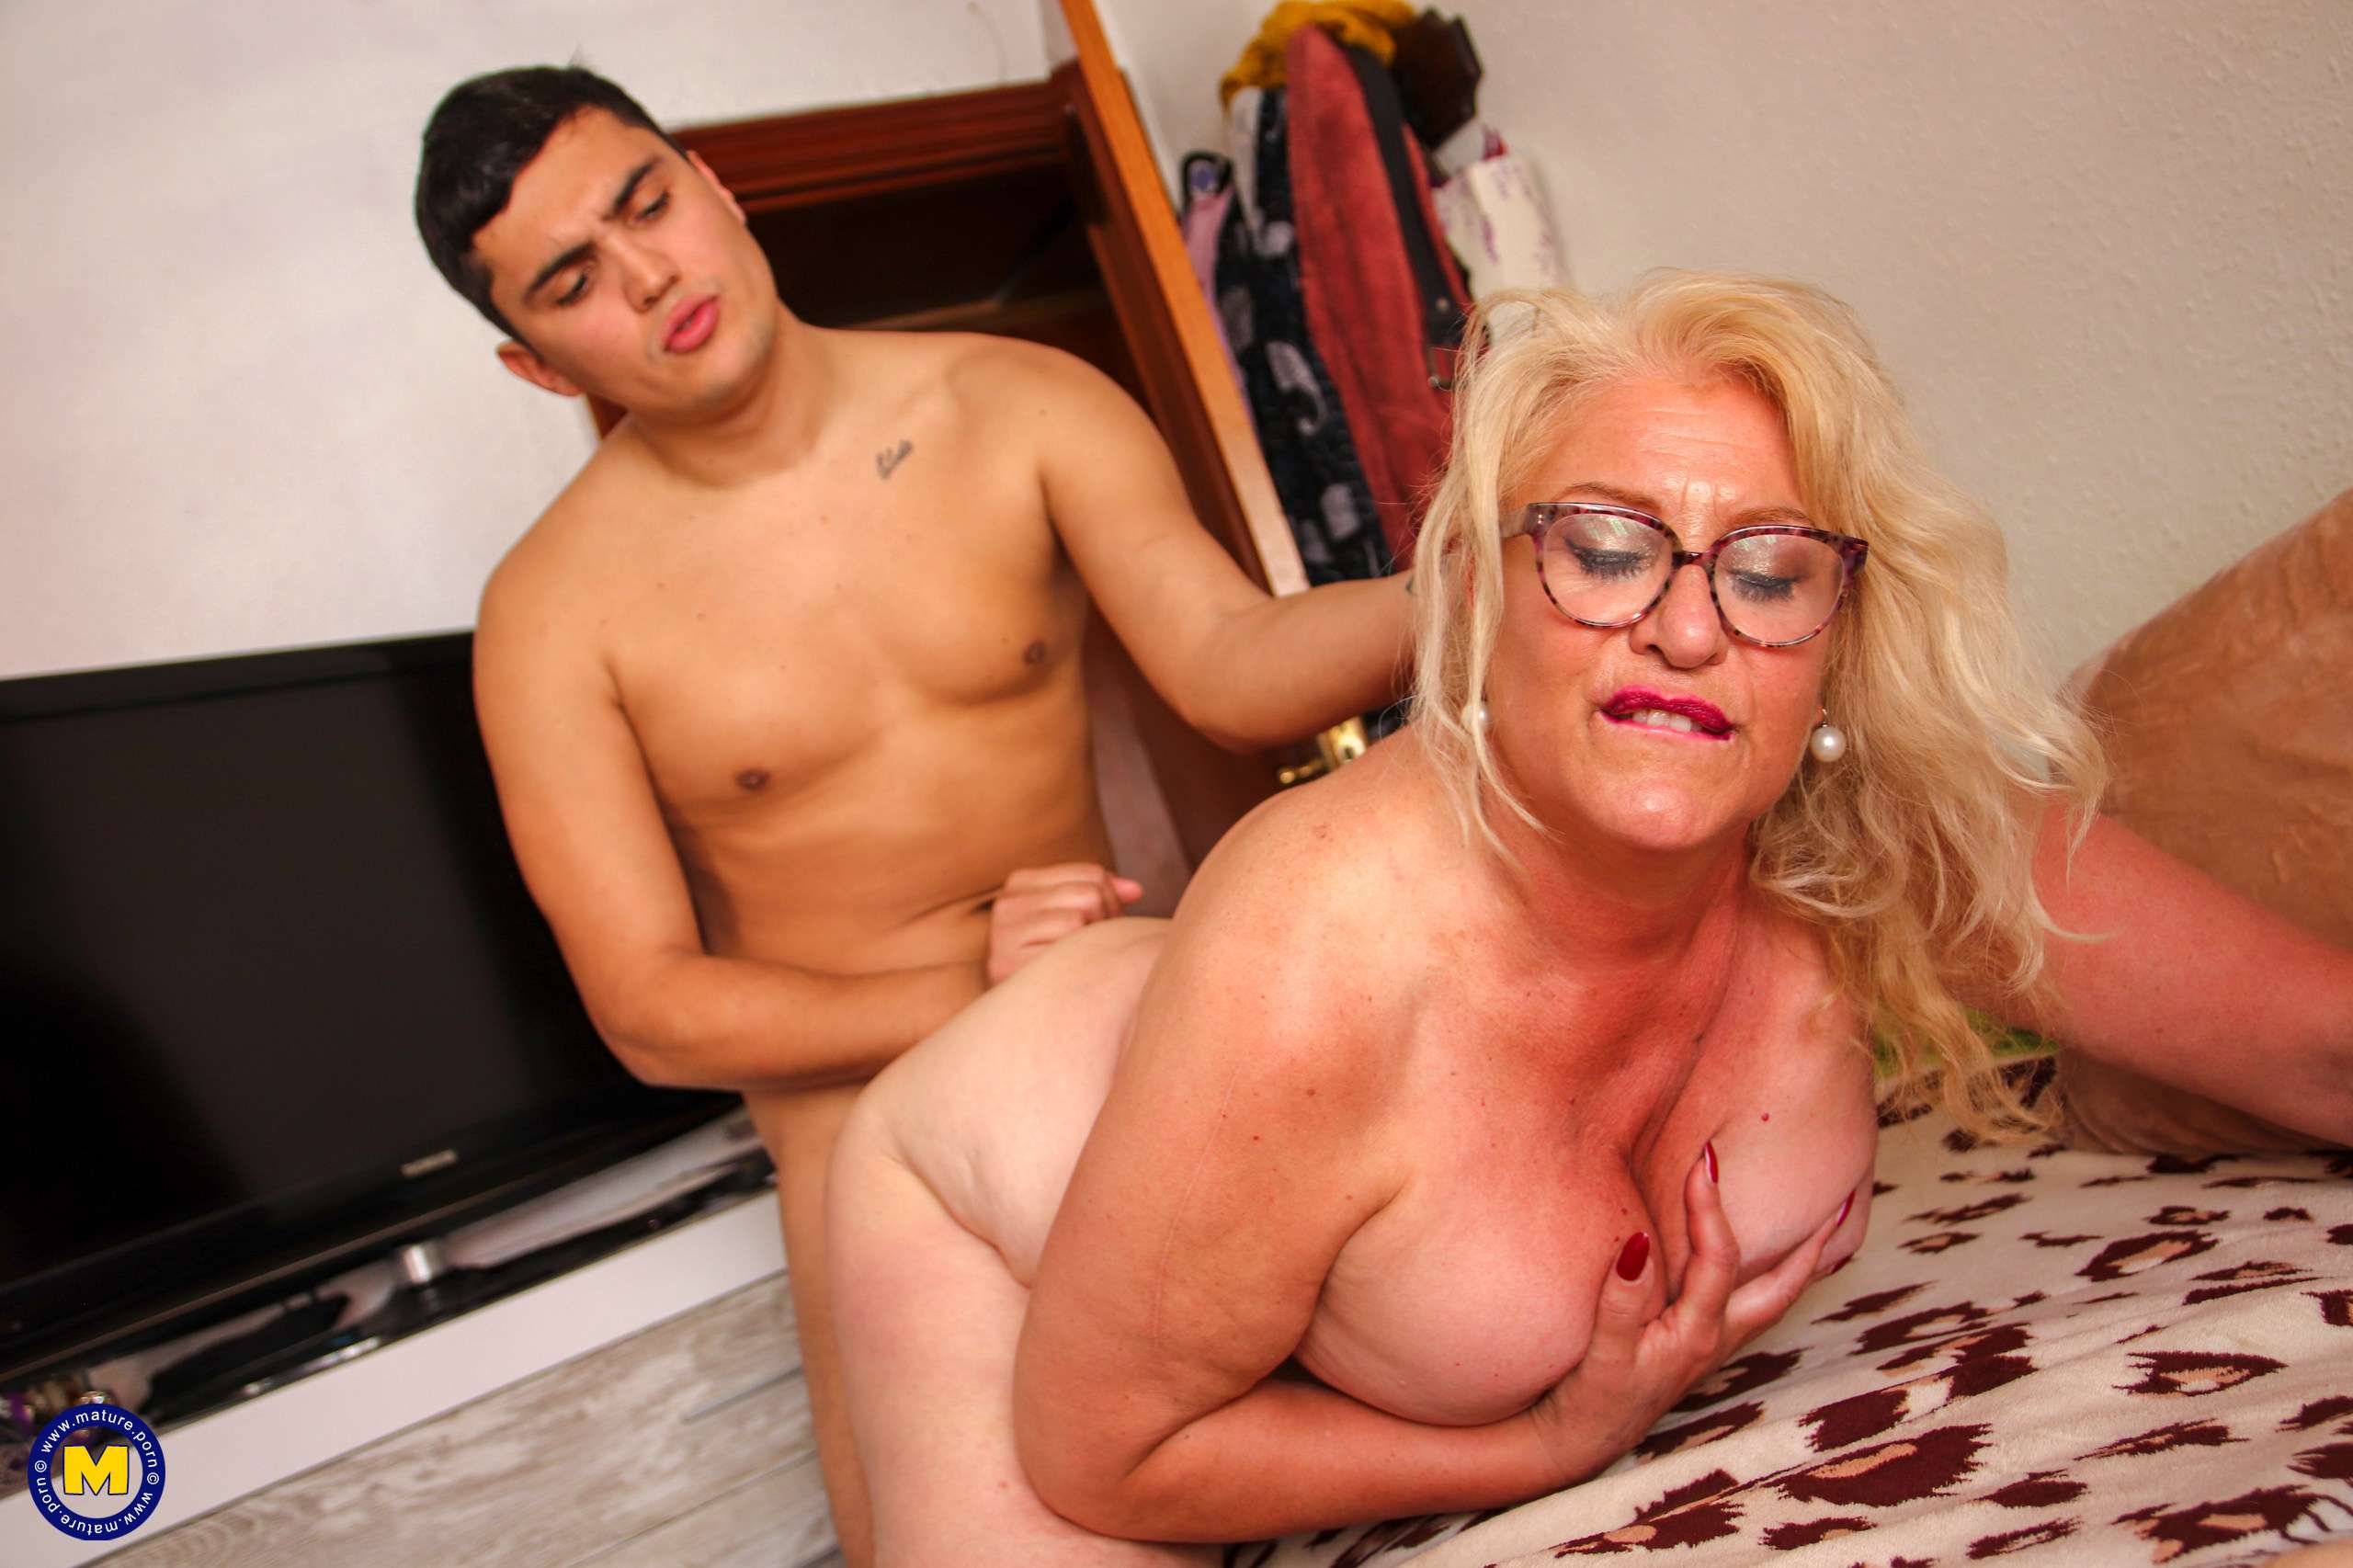 Big breasted BBW getting her way with a toyboy